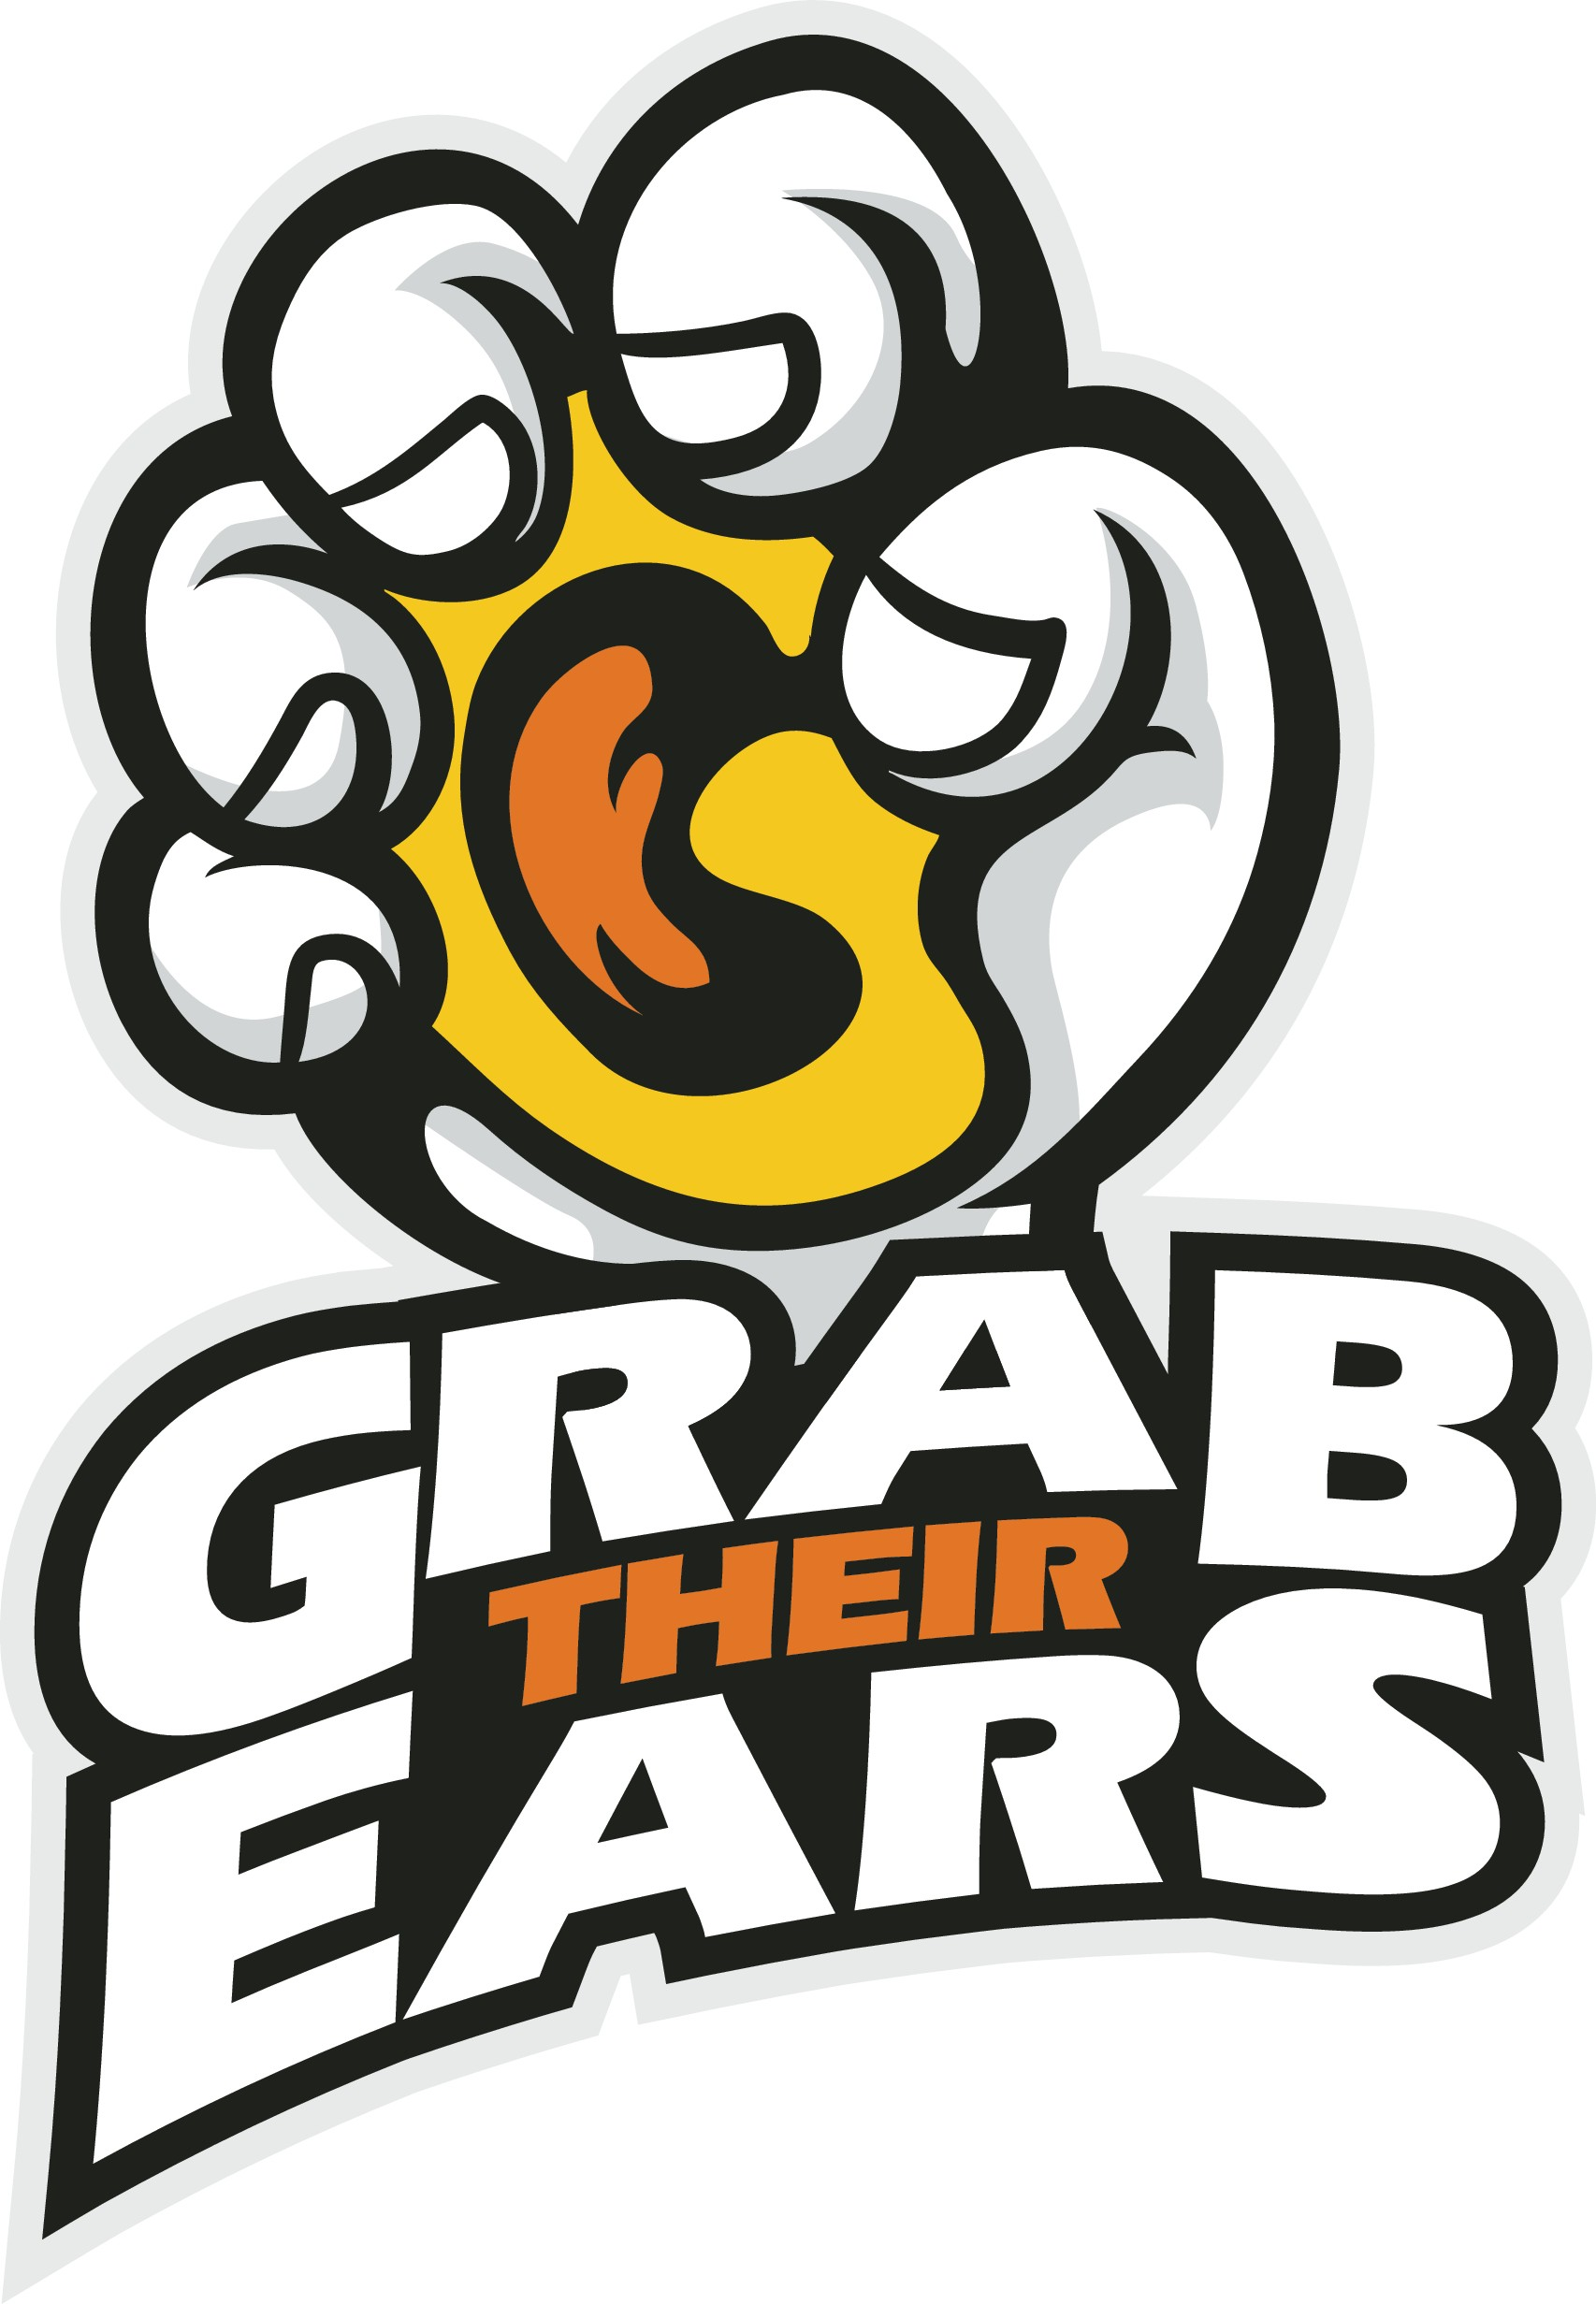 Grab Their Eyes - Create a Logo for a Company That Does for Audio What You Do for Visual